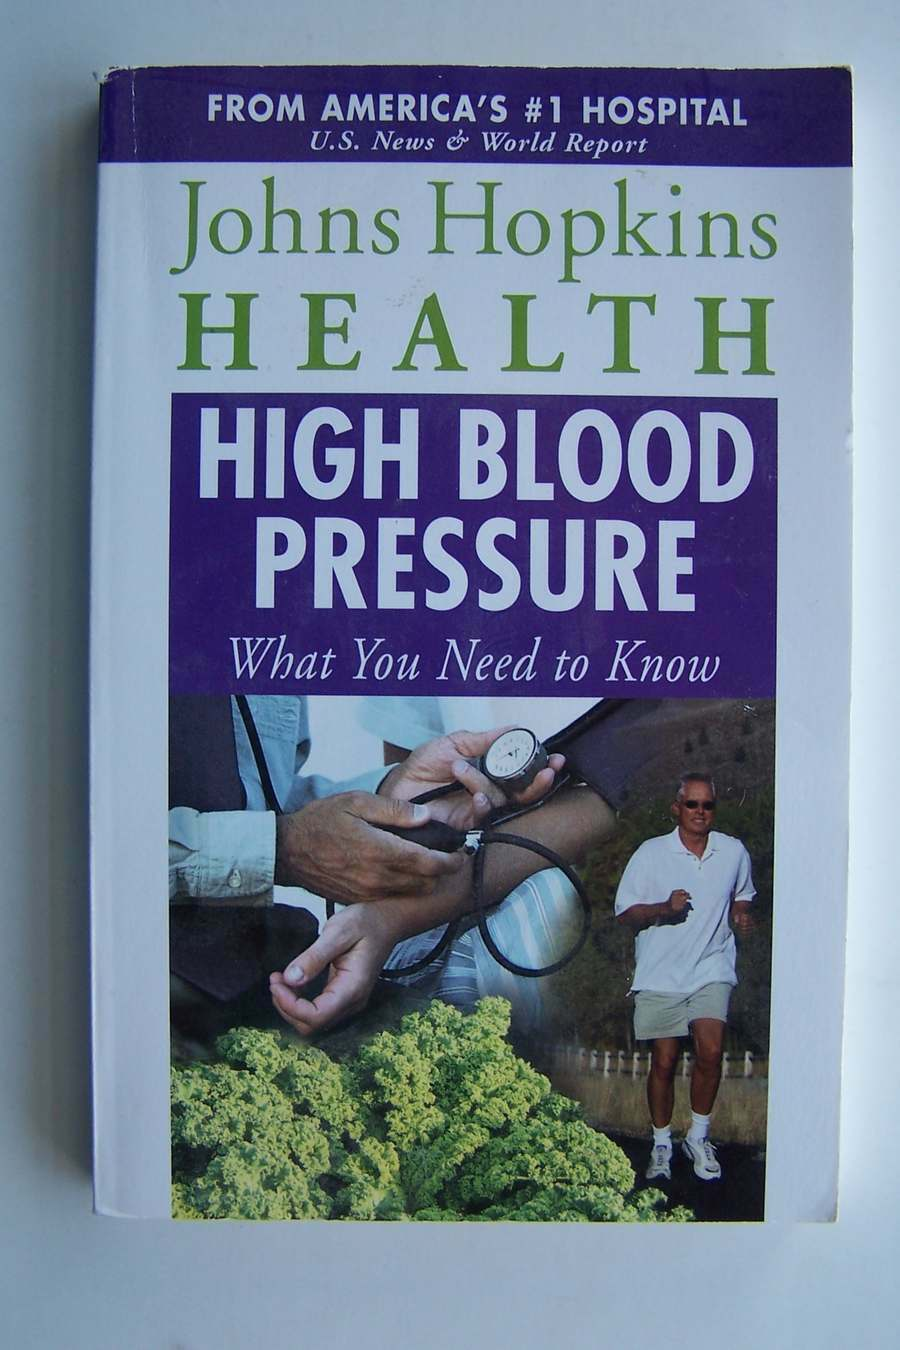 High Blood Pressure: What You Need to Know Johns Hopkin